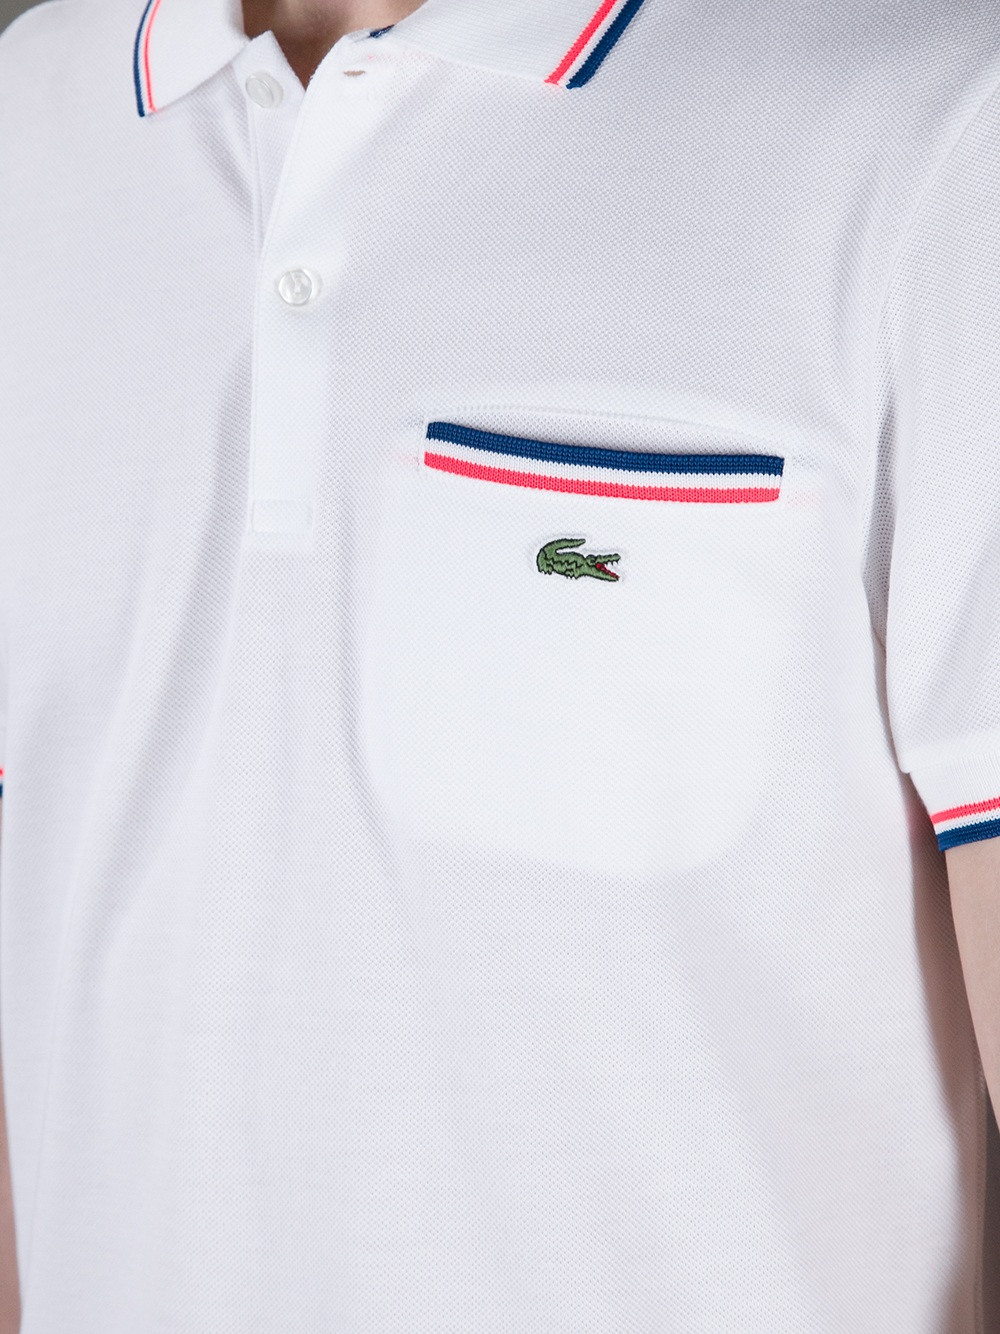 Network Shirts Polo Of Pockets « Alzheimer's Lacoste With Oregon rdthCQsx